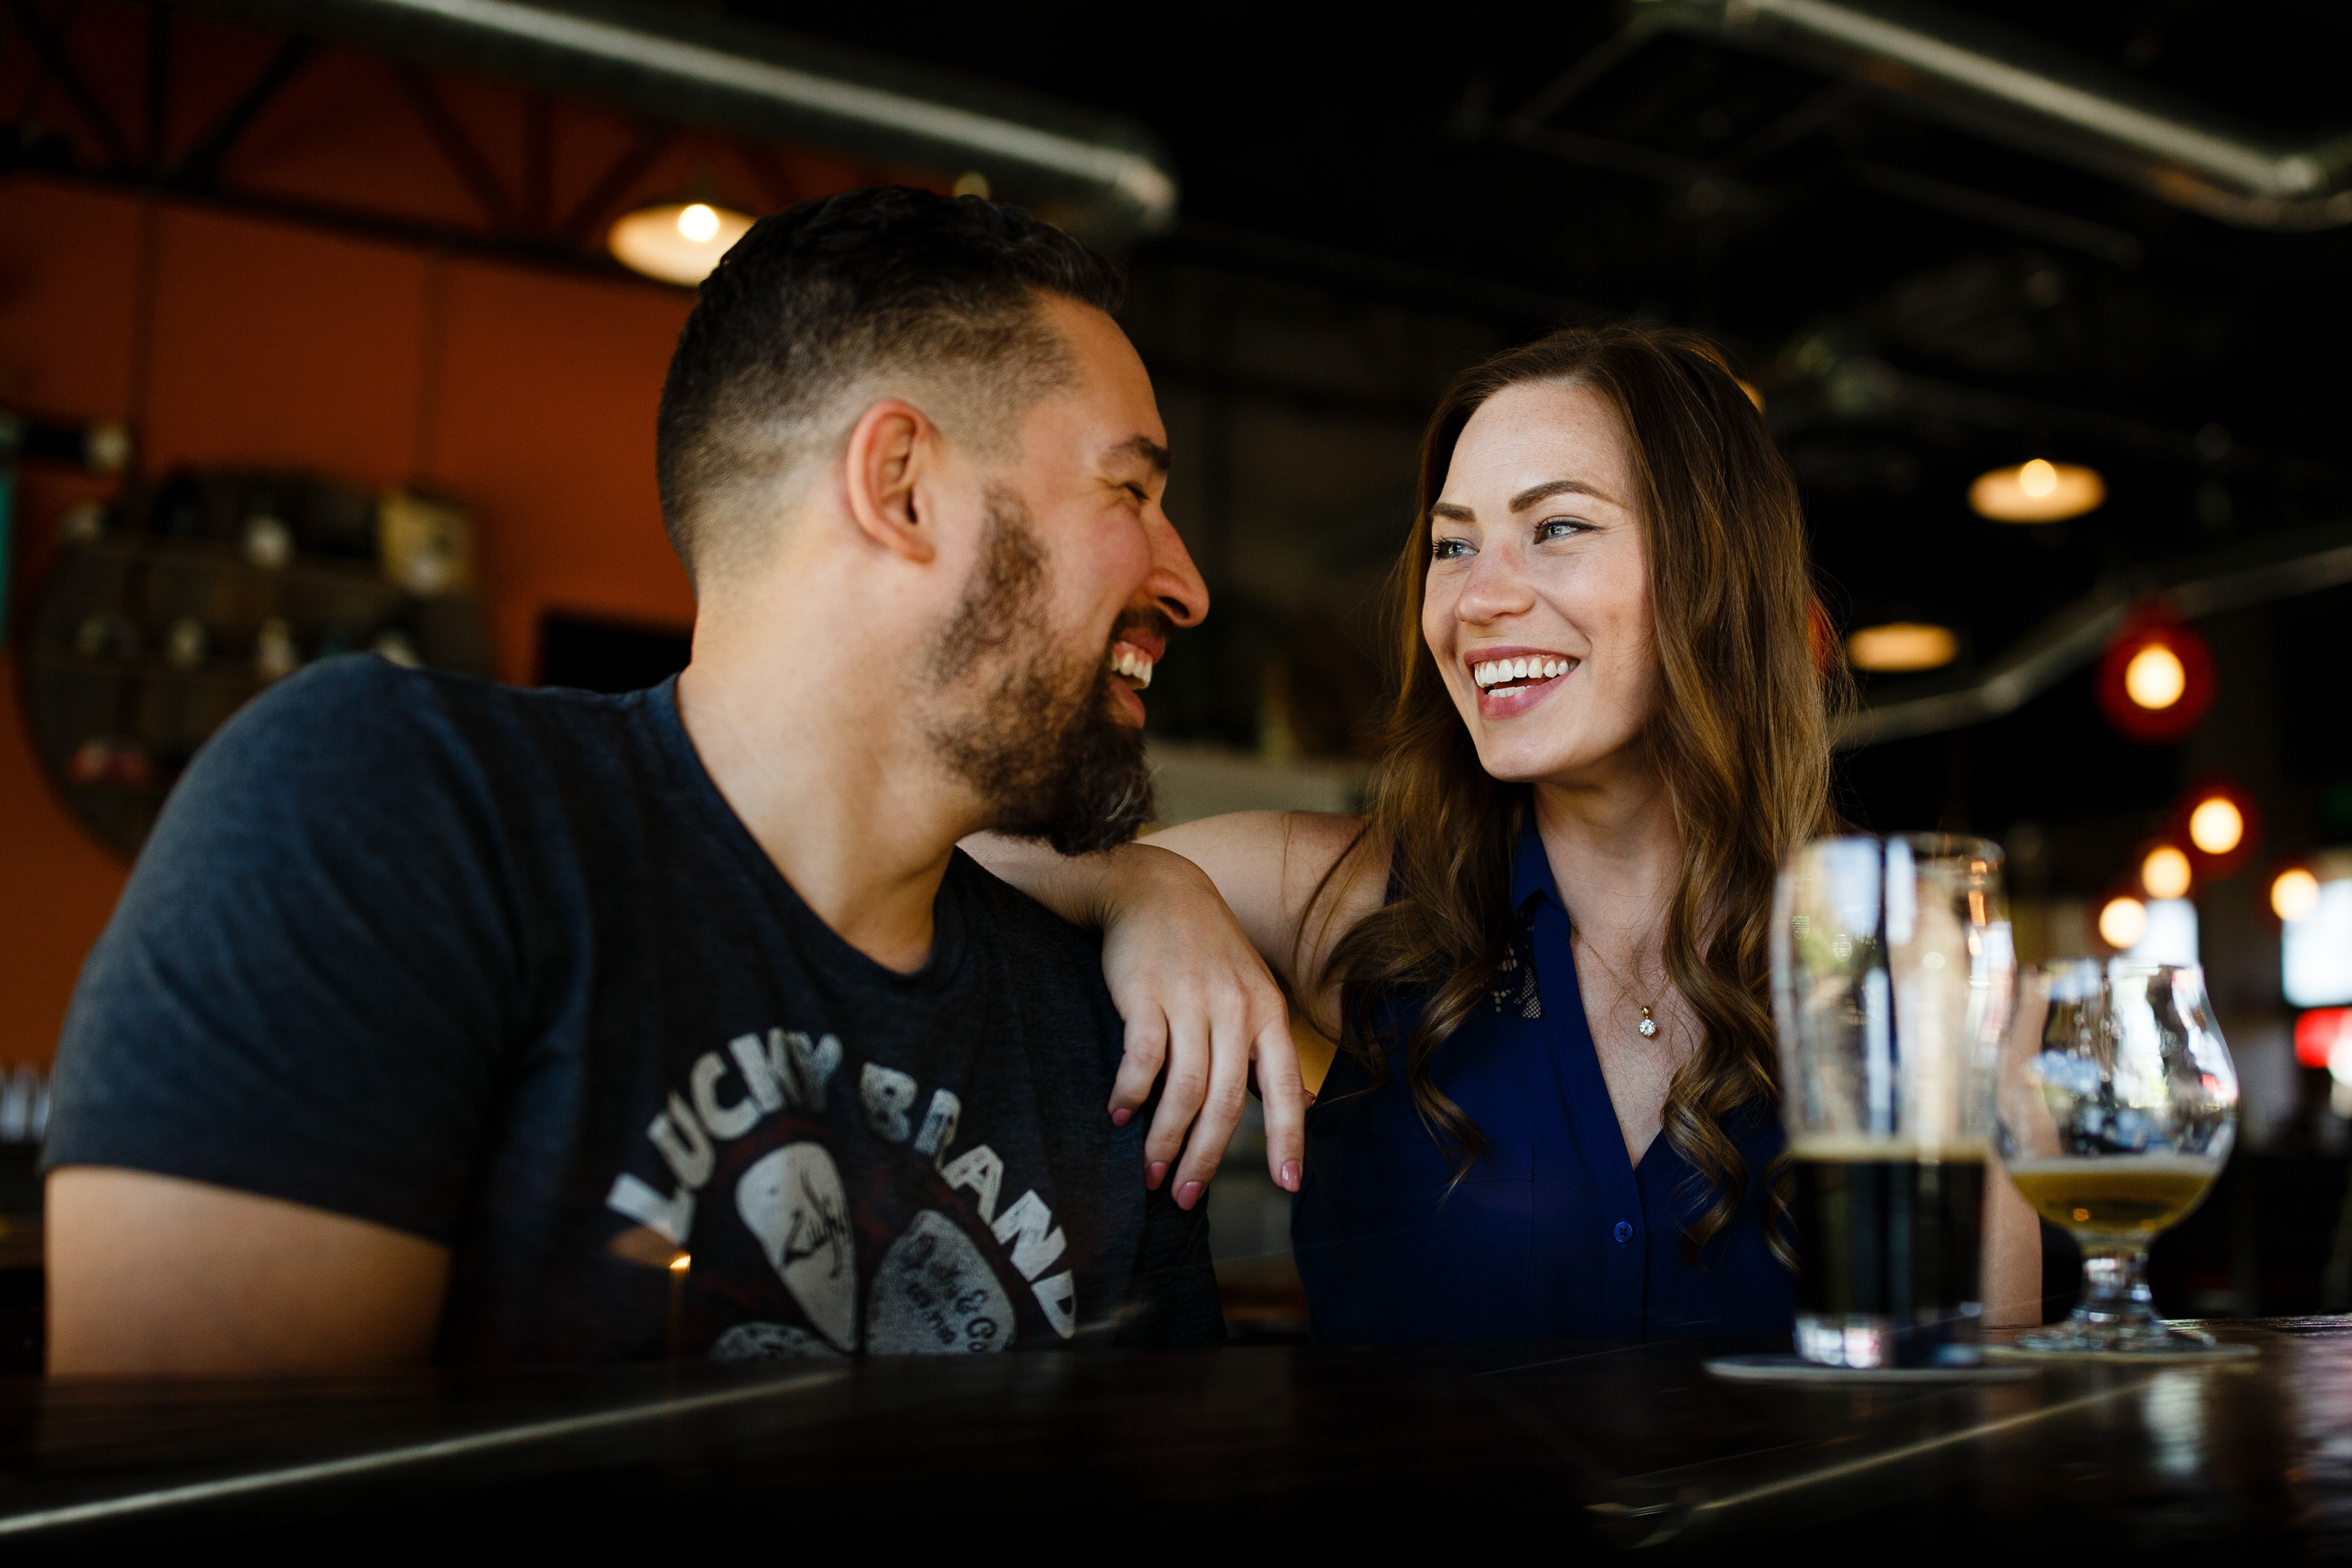 Nick and Sharon share a beer together at Cannonball Creek Brewing Company in Golden, Colorado